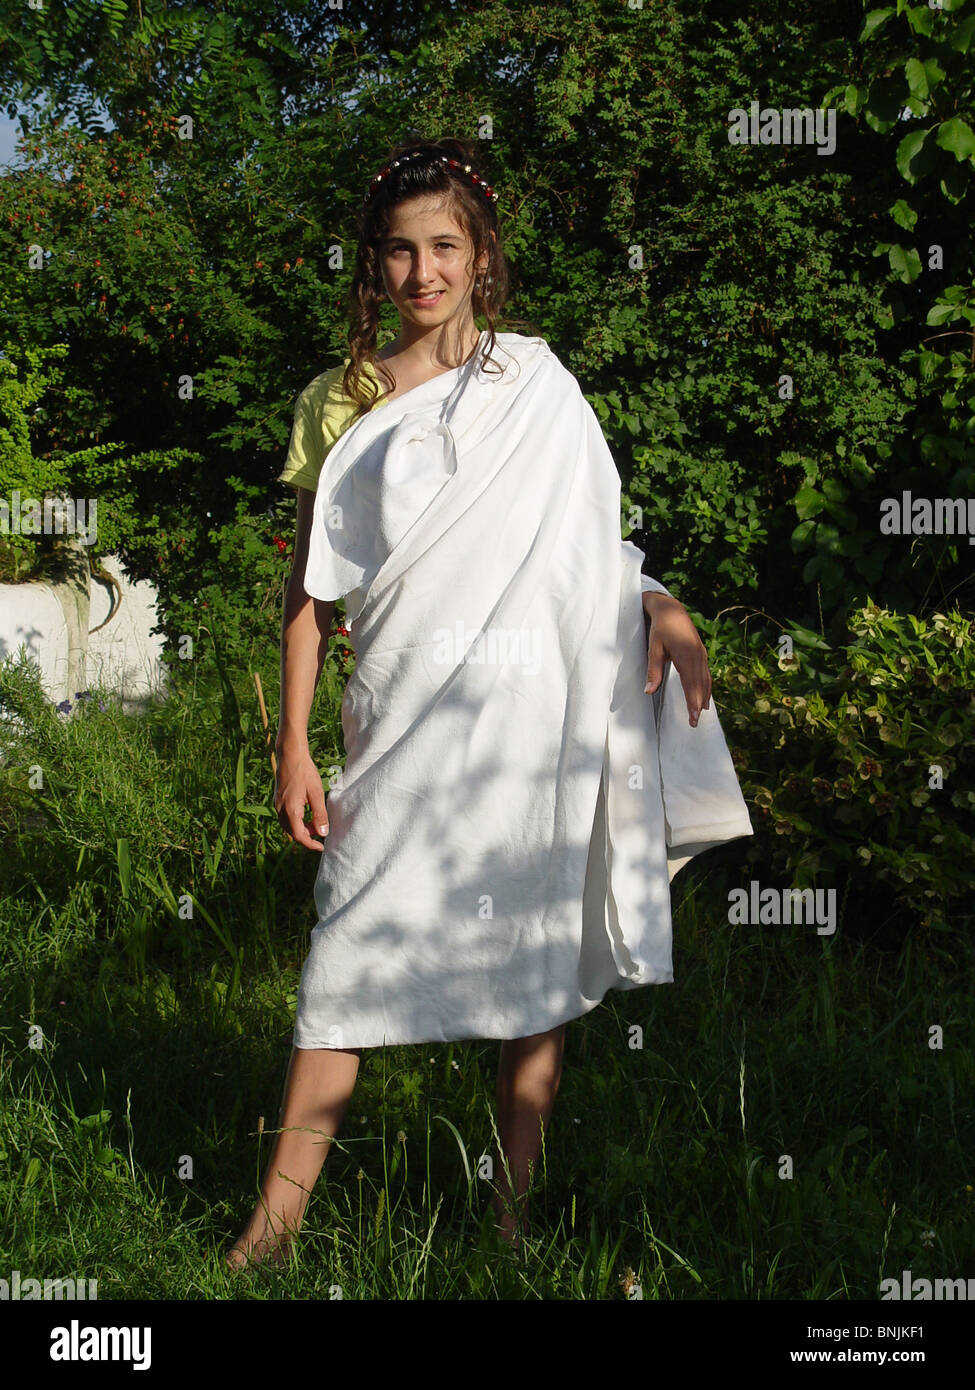 girls teenagers meadow toga roman linen disguising fancy dress